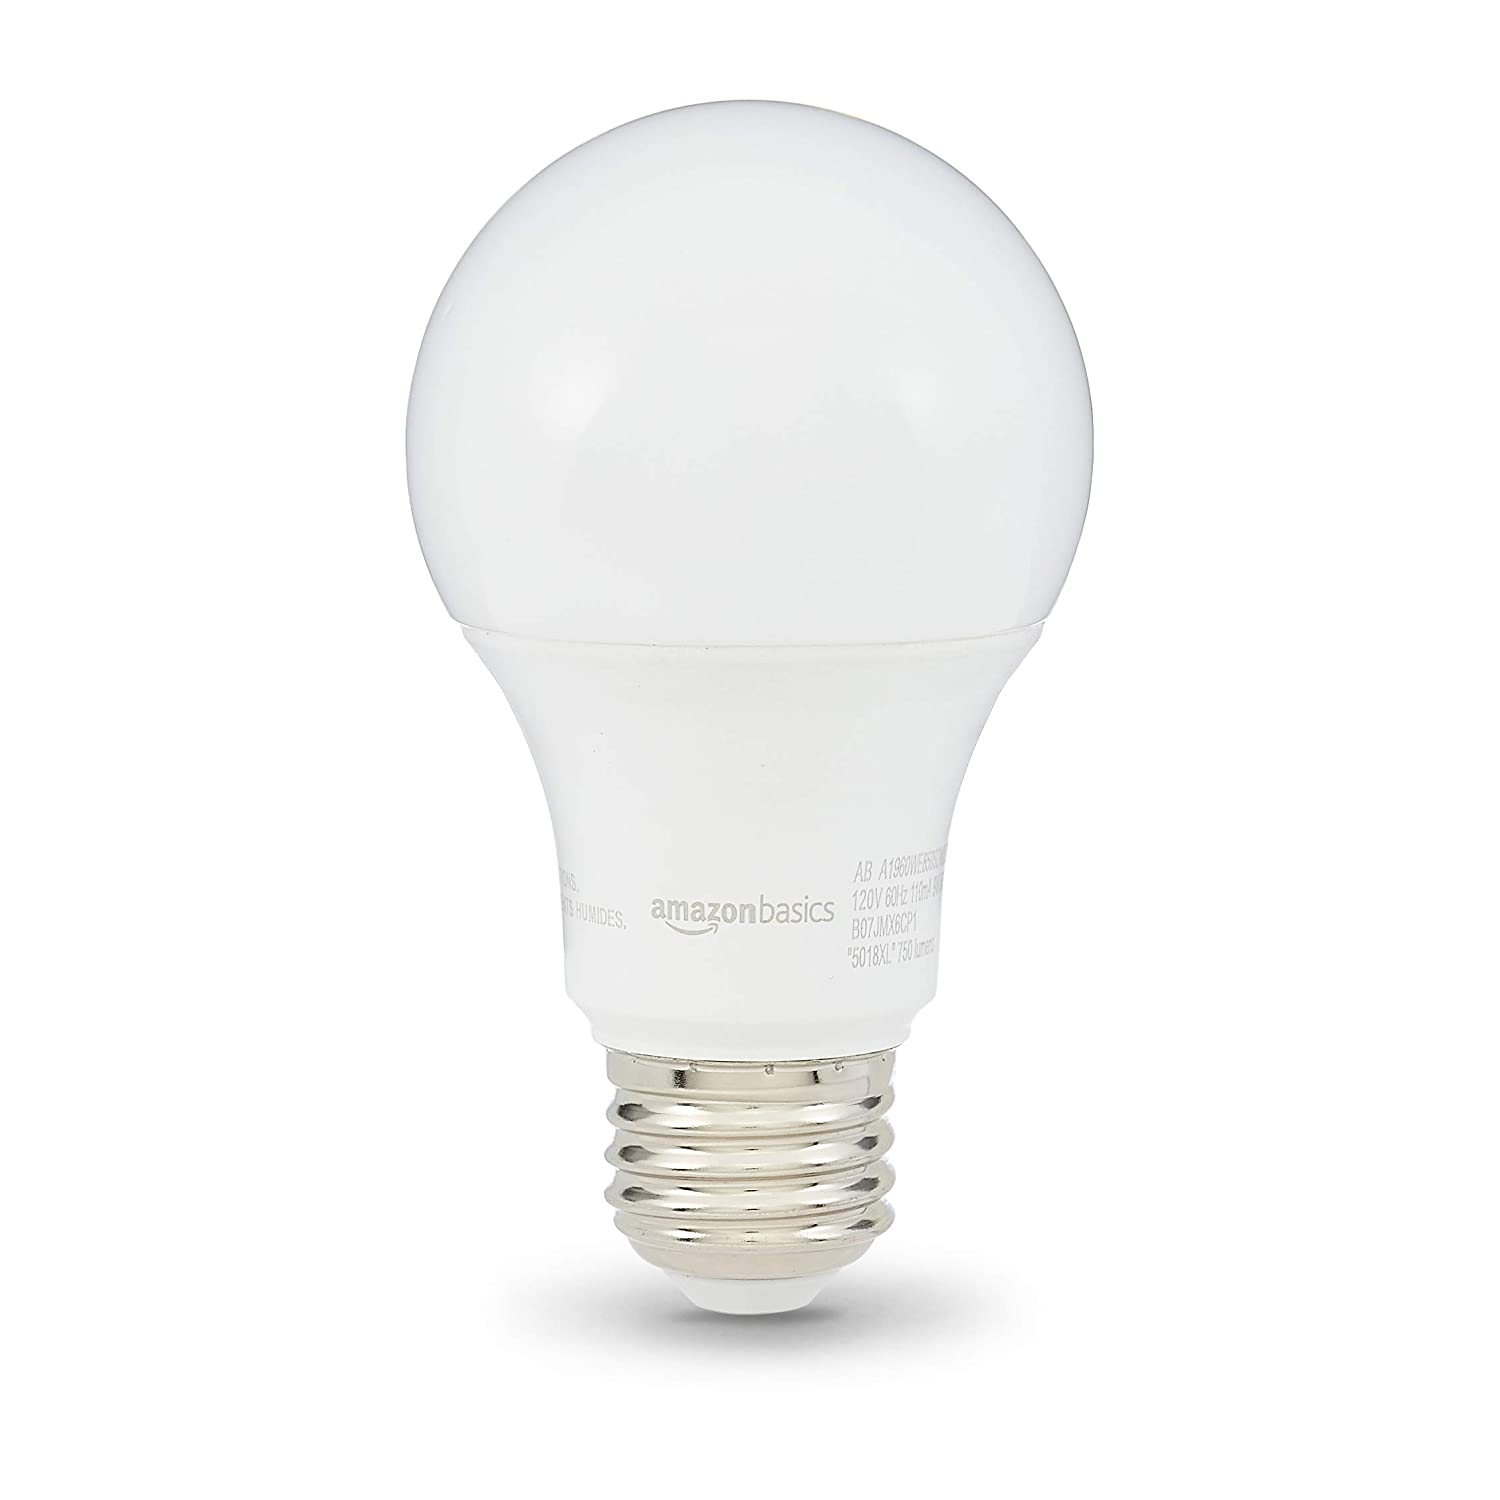 AmazonBasics 60W Equivalent, Daylight, Dimmable, 10,000 Hour Lifetime, A19 LED Light Bulb   6-Pack